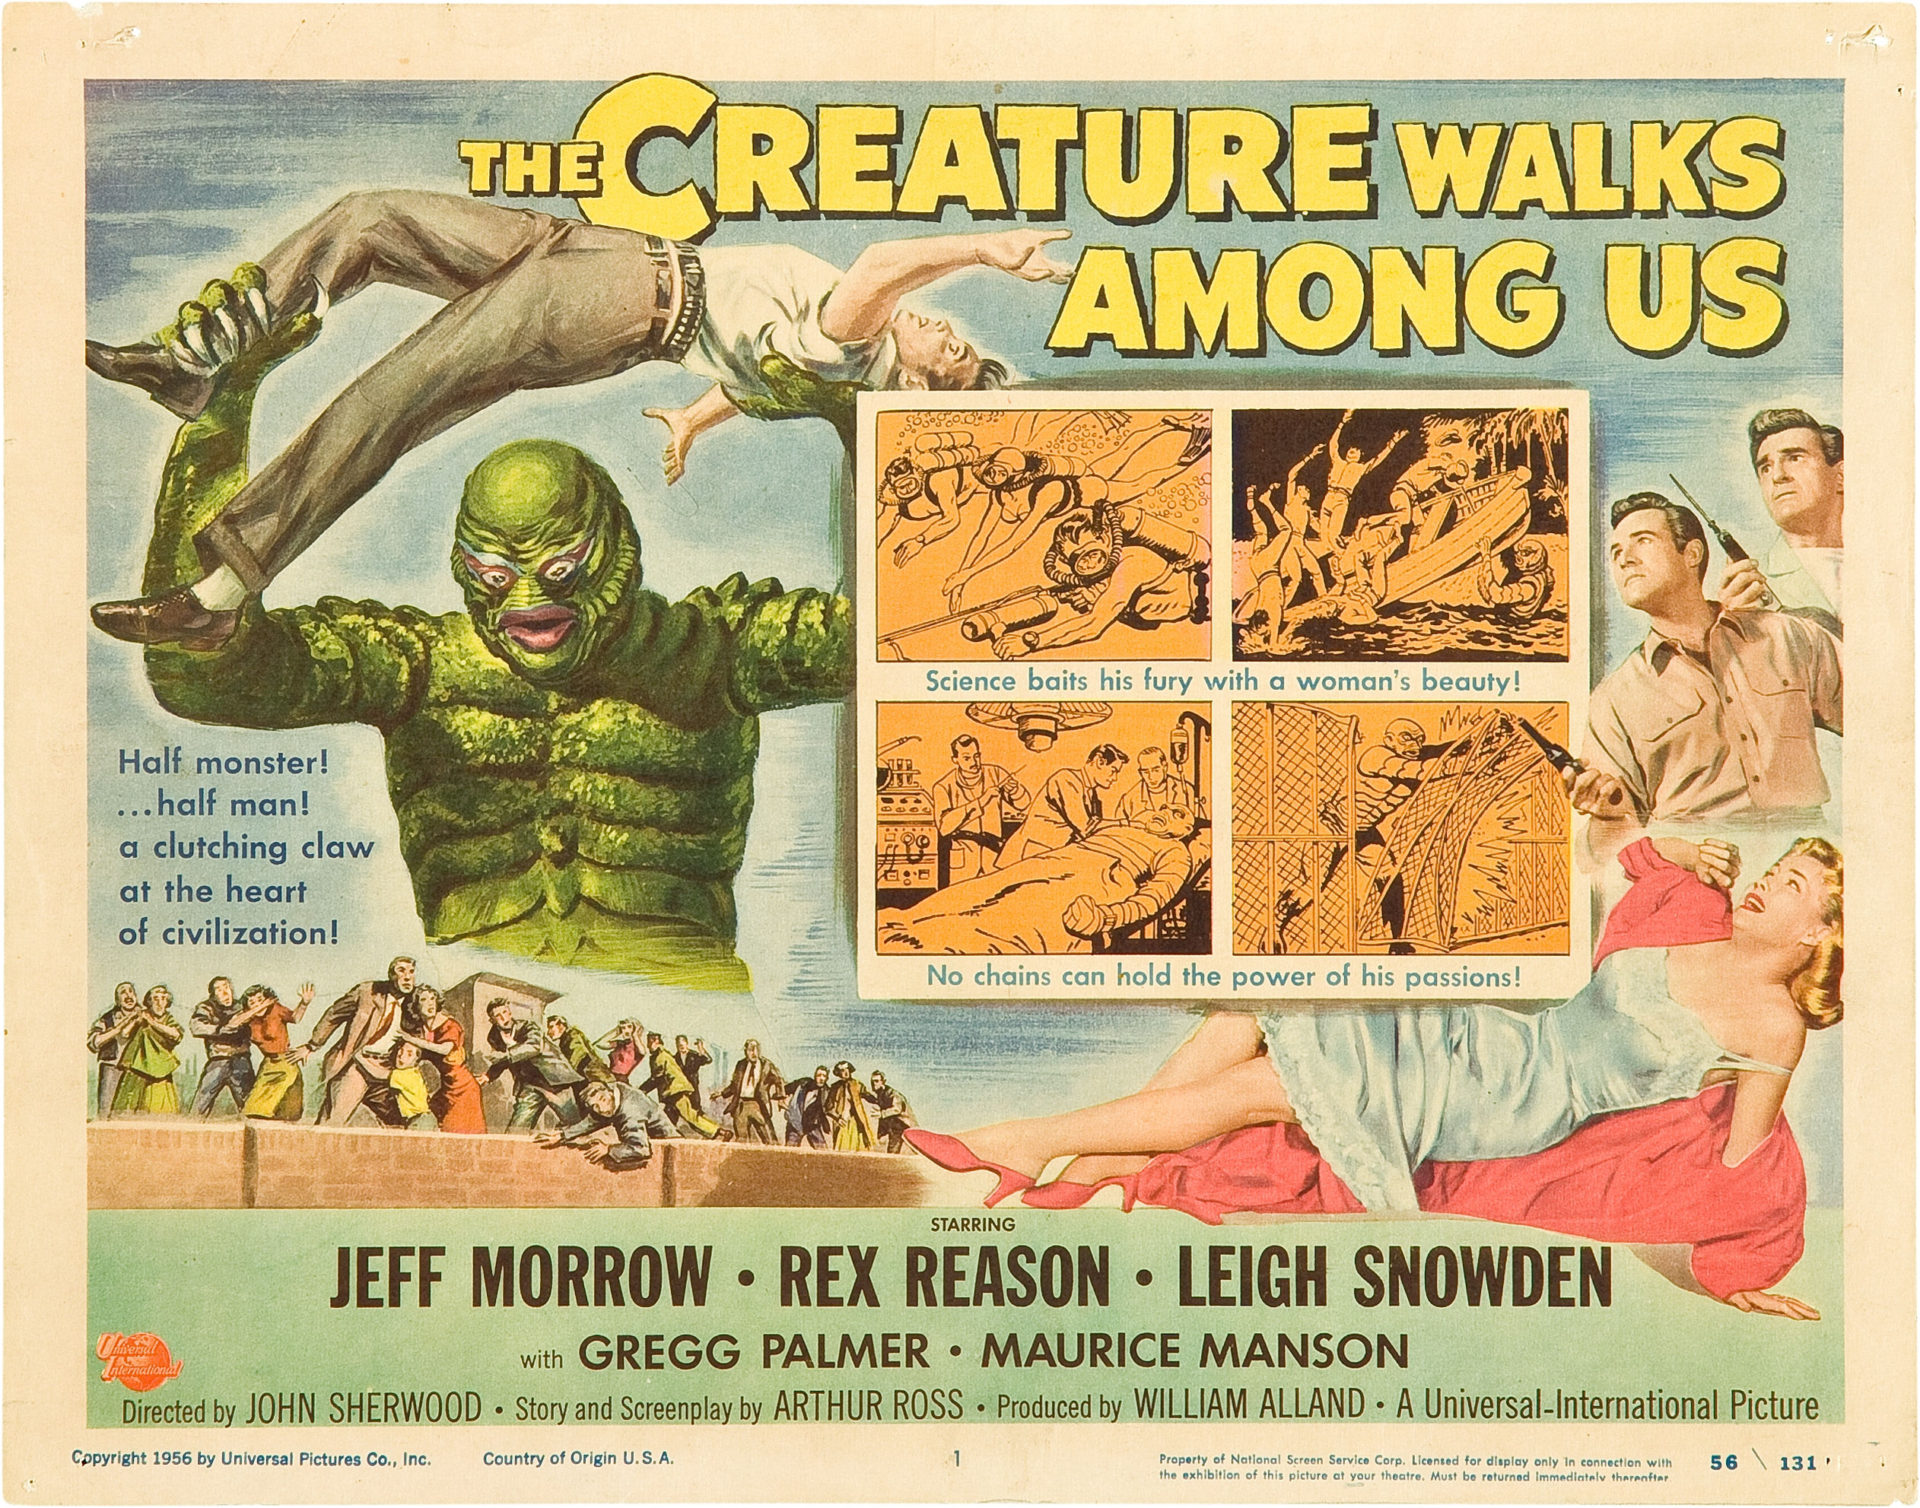 Gods & Monsters: Identity Loss in The Creature Walks Among Us (1956)